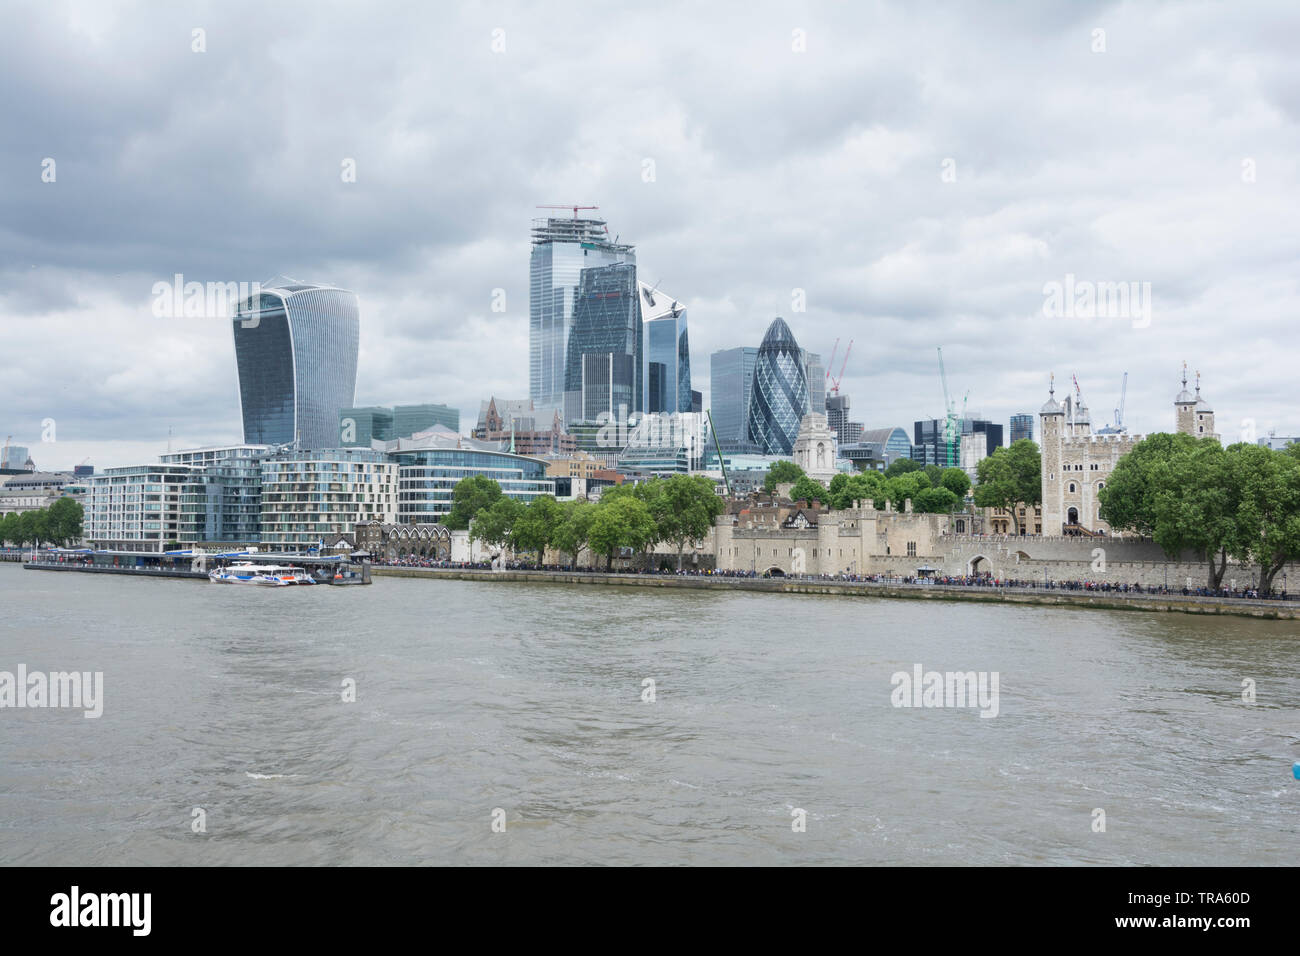 The City of London's central business district and ever-changing skyline as new skyscrapers are added to the mix - Stock Image